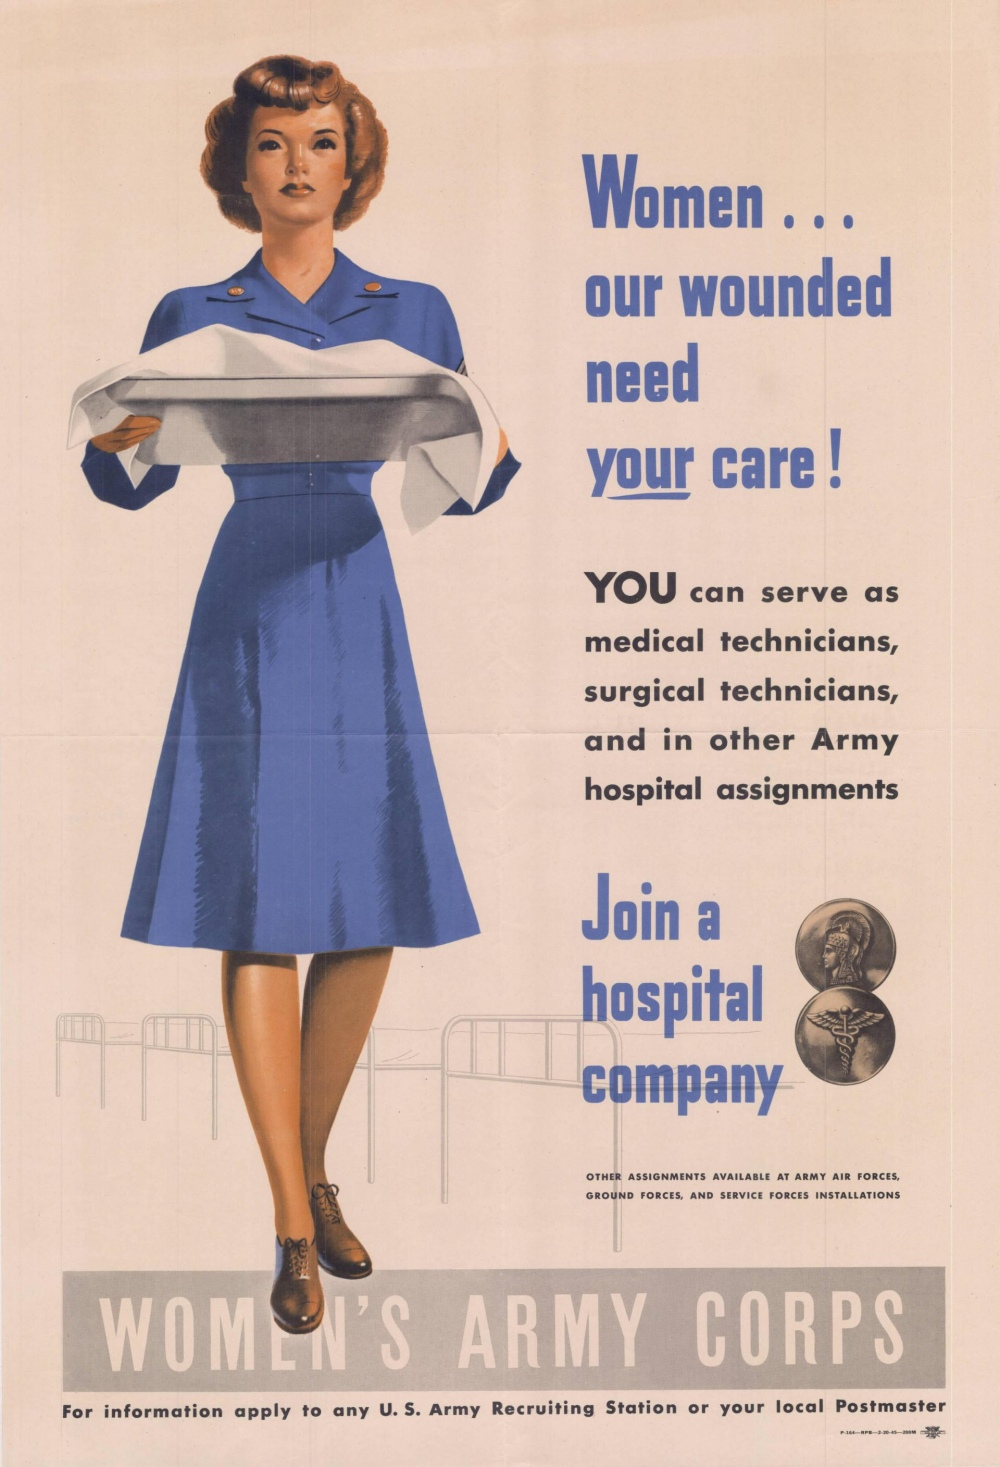 wwii poster seeking enlistment for the Women's Army Corps